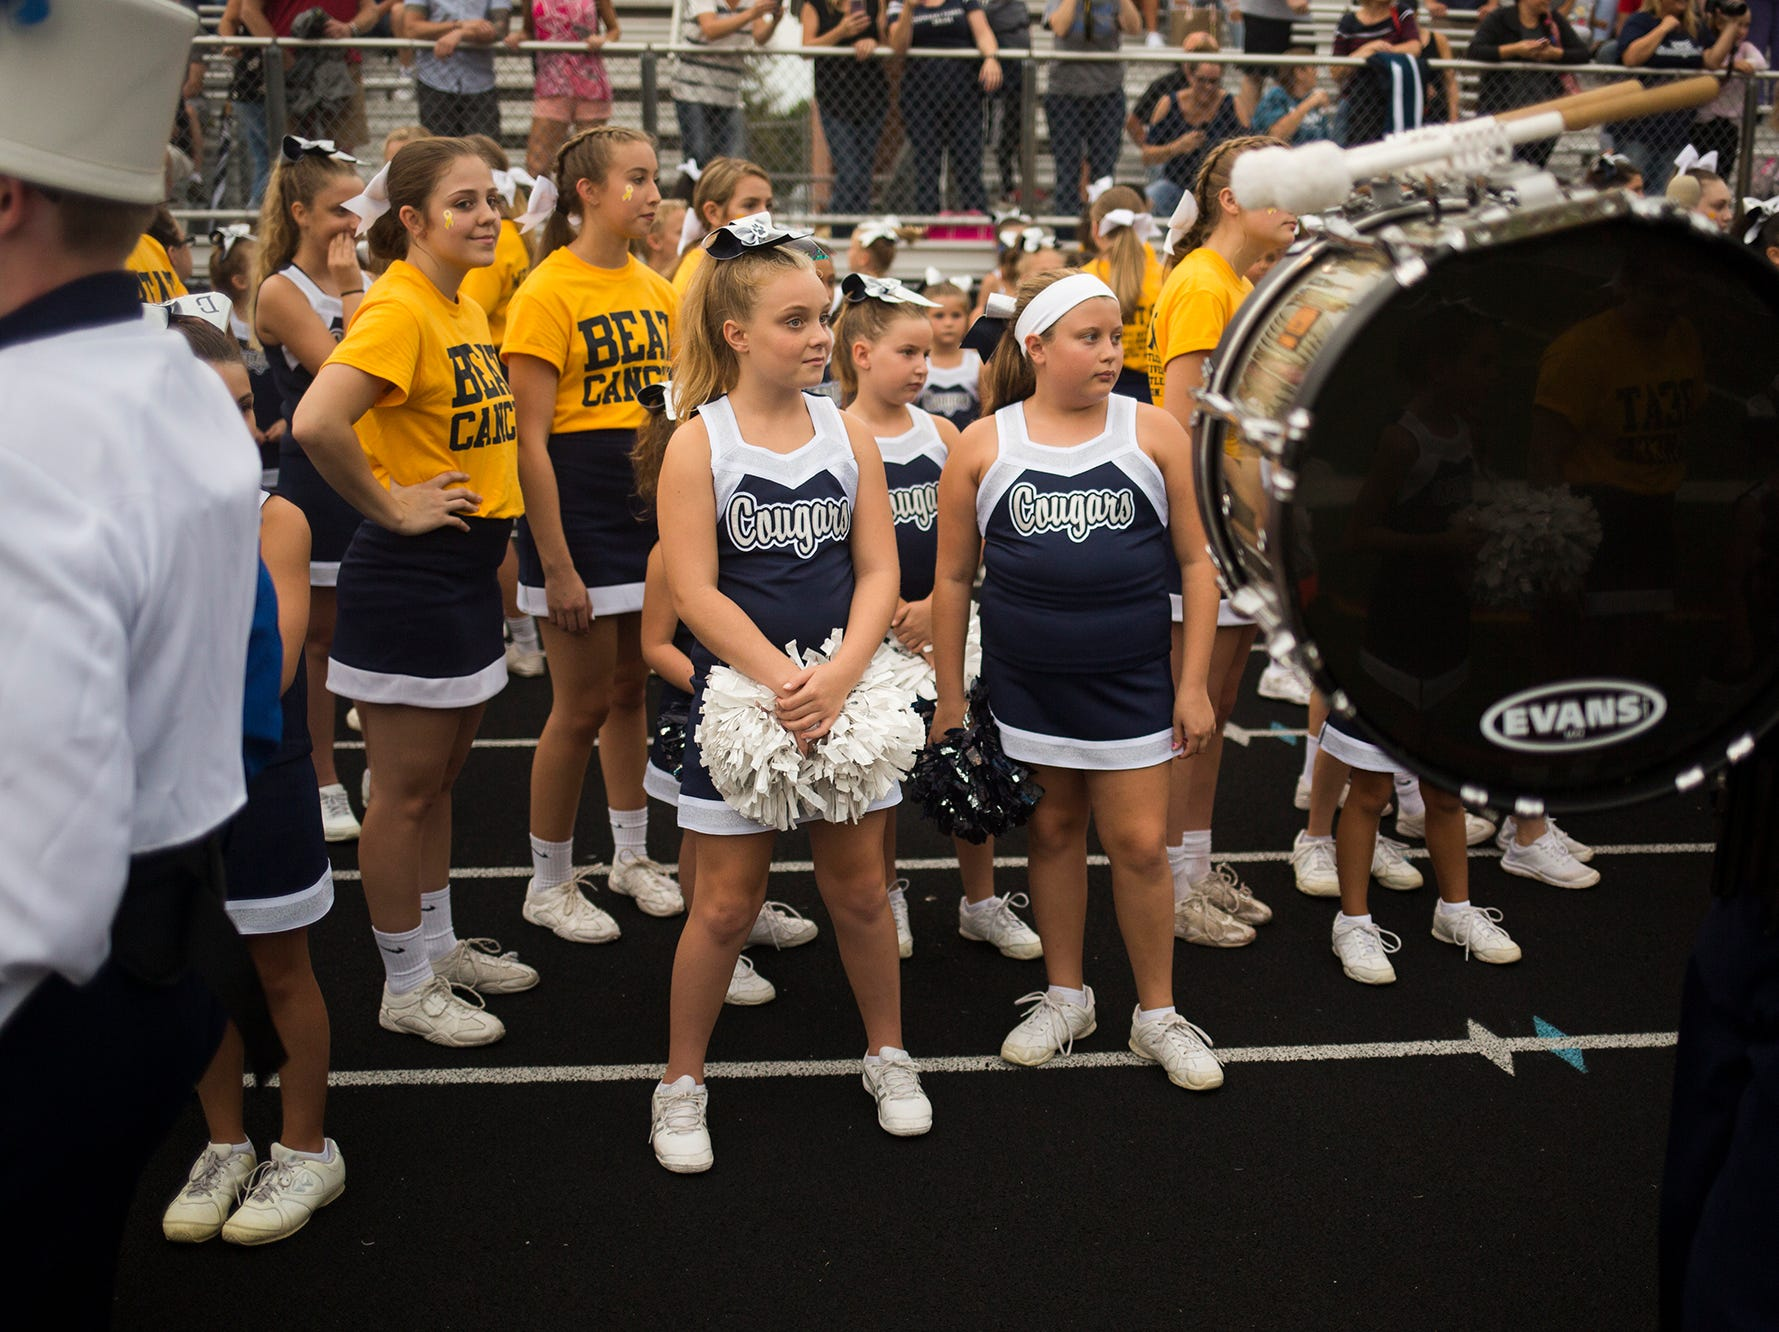 Dallastown Area High School cheerleaders stand with Dallastown youth cheerleaders as the school's marching band enters the stadium prior to the game. Dallastown defeats Penn Manor 42-7 in football at Dallastown Area High School in Dallastown, Friday, September 7, 2018.